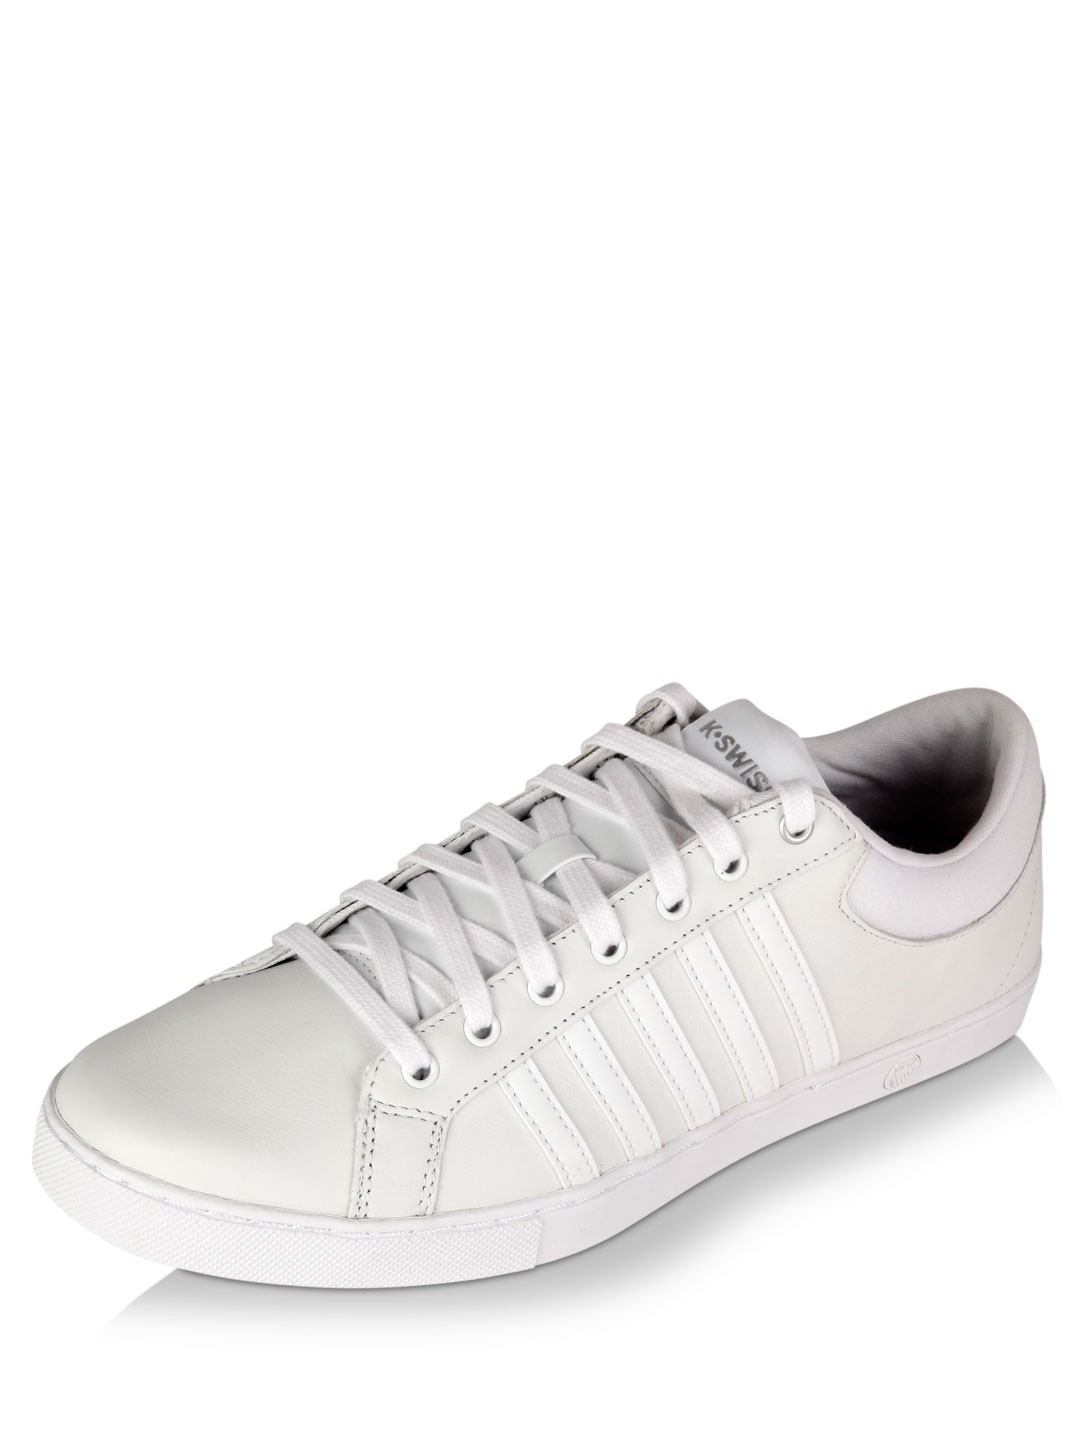 buy k swiss classic leather tennis shoes for s